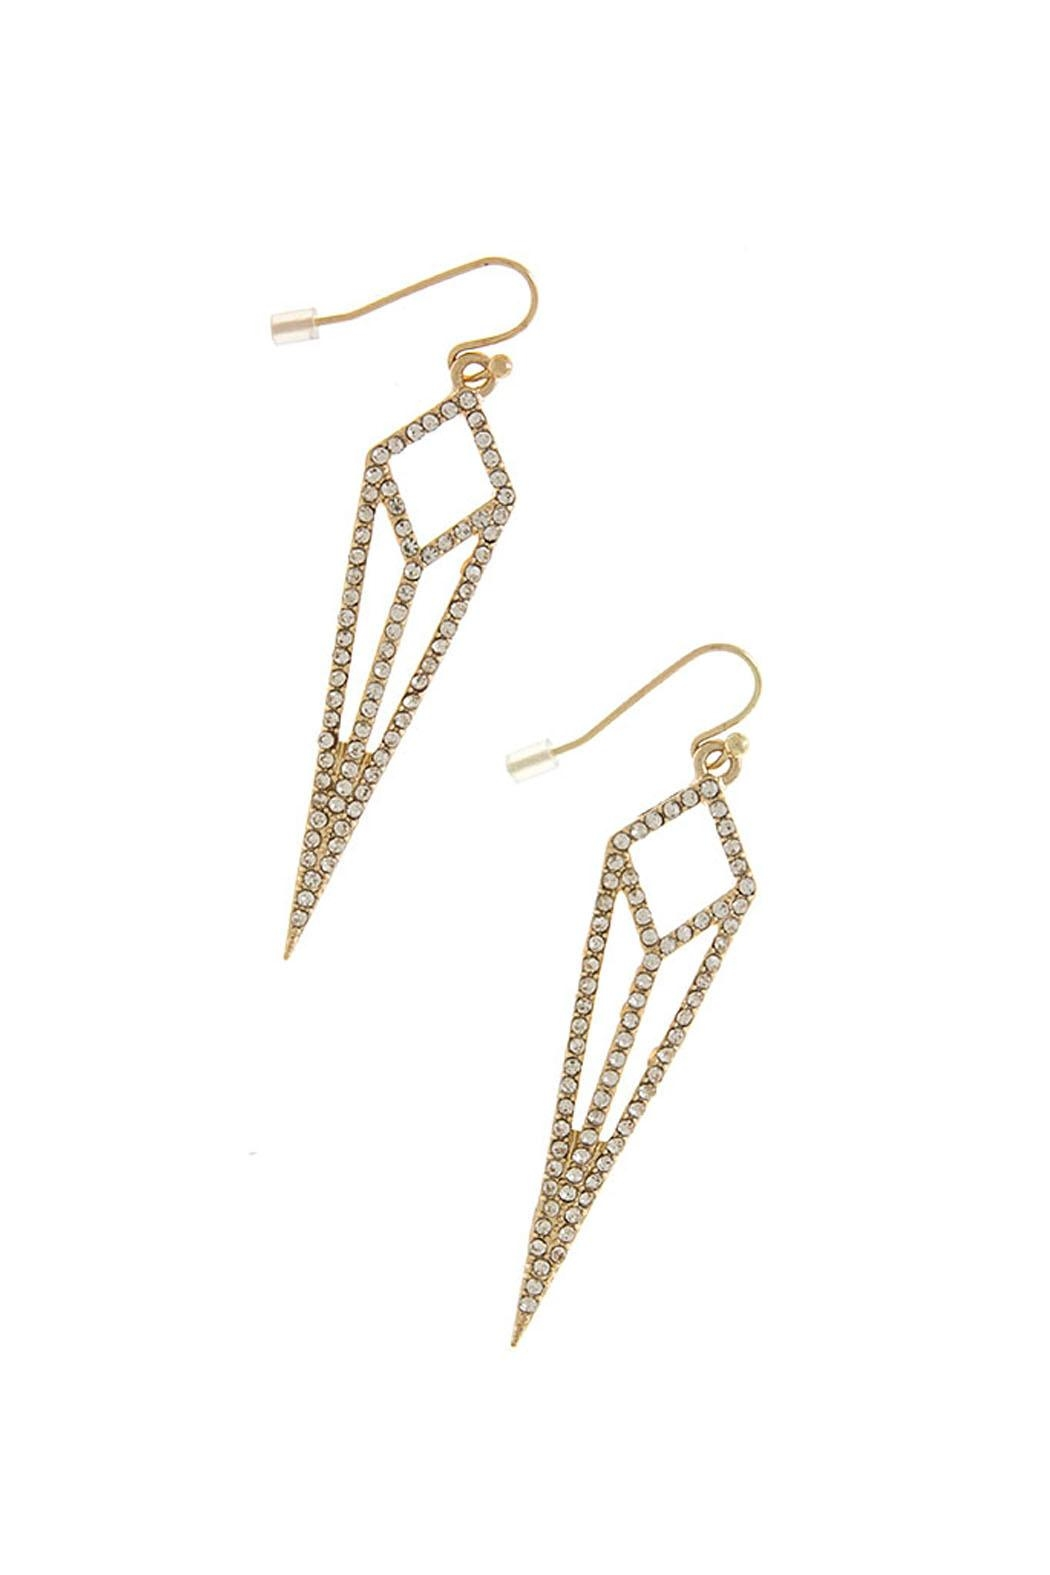 geometric trends jewelry earring fashion trendy earrings models ideas designs design